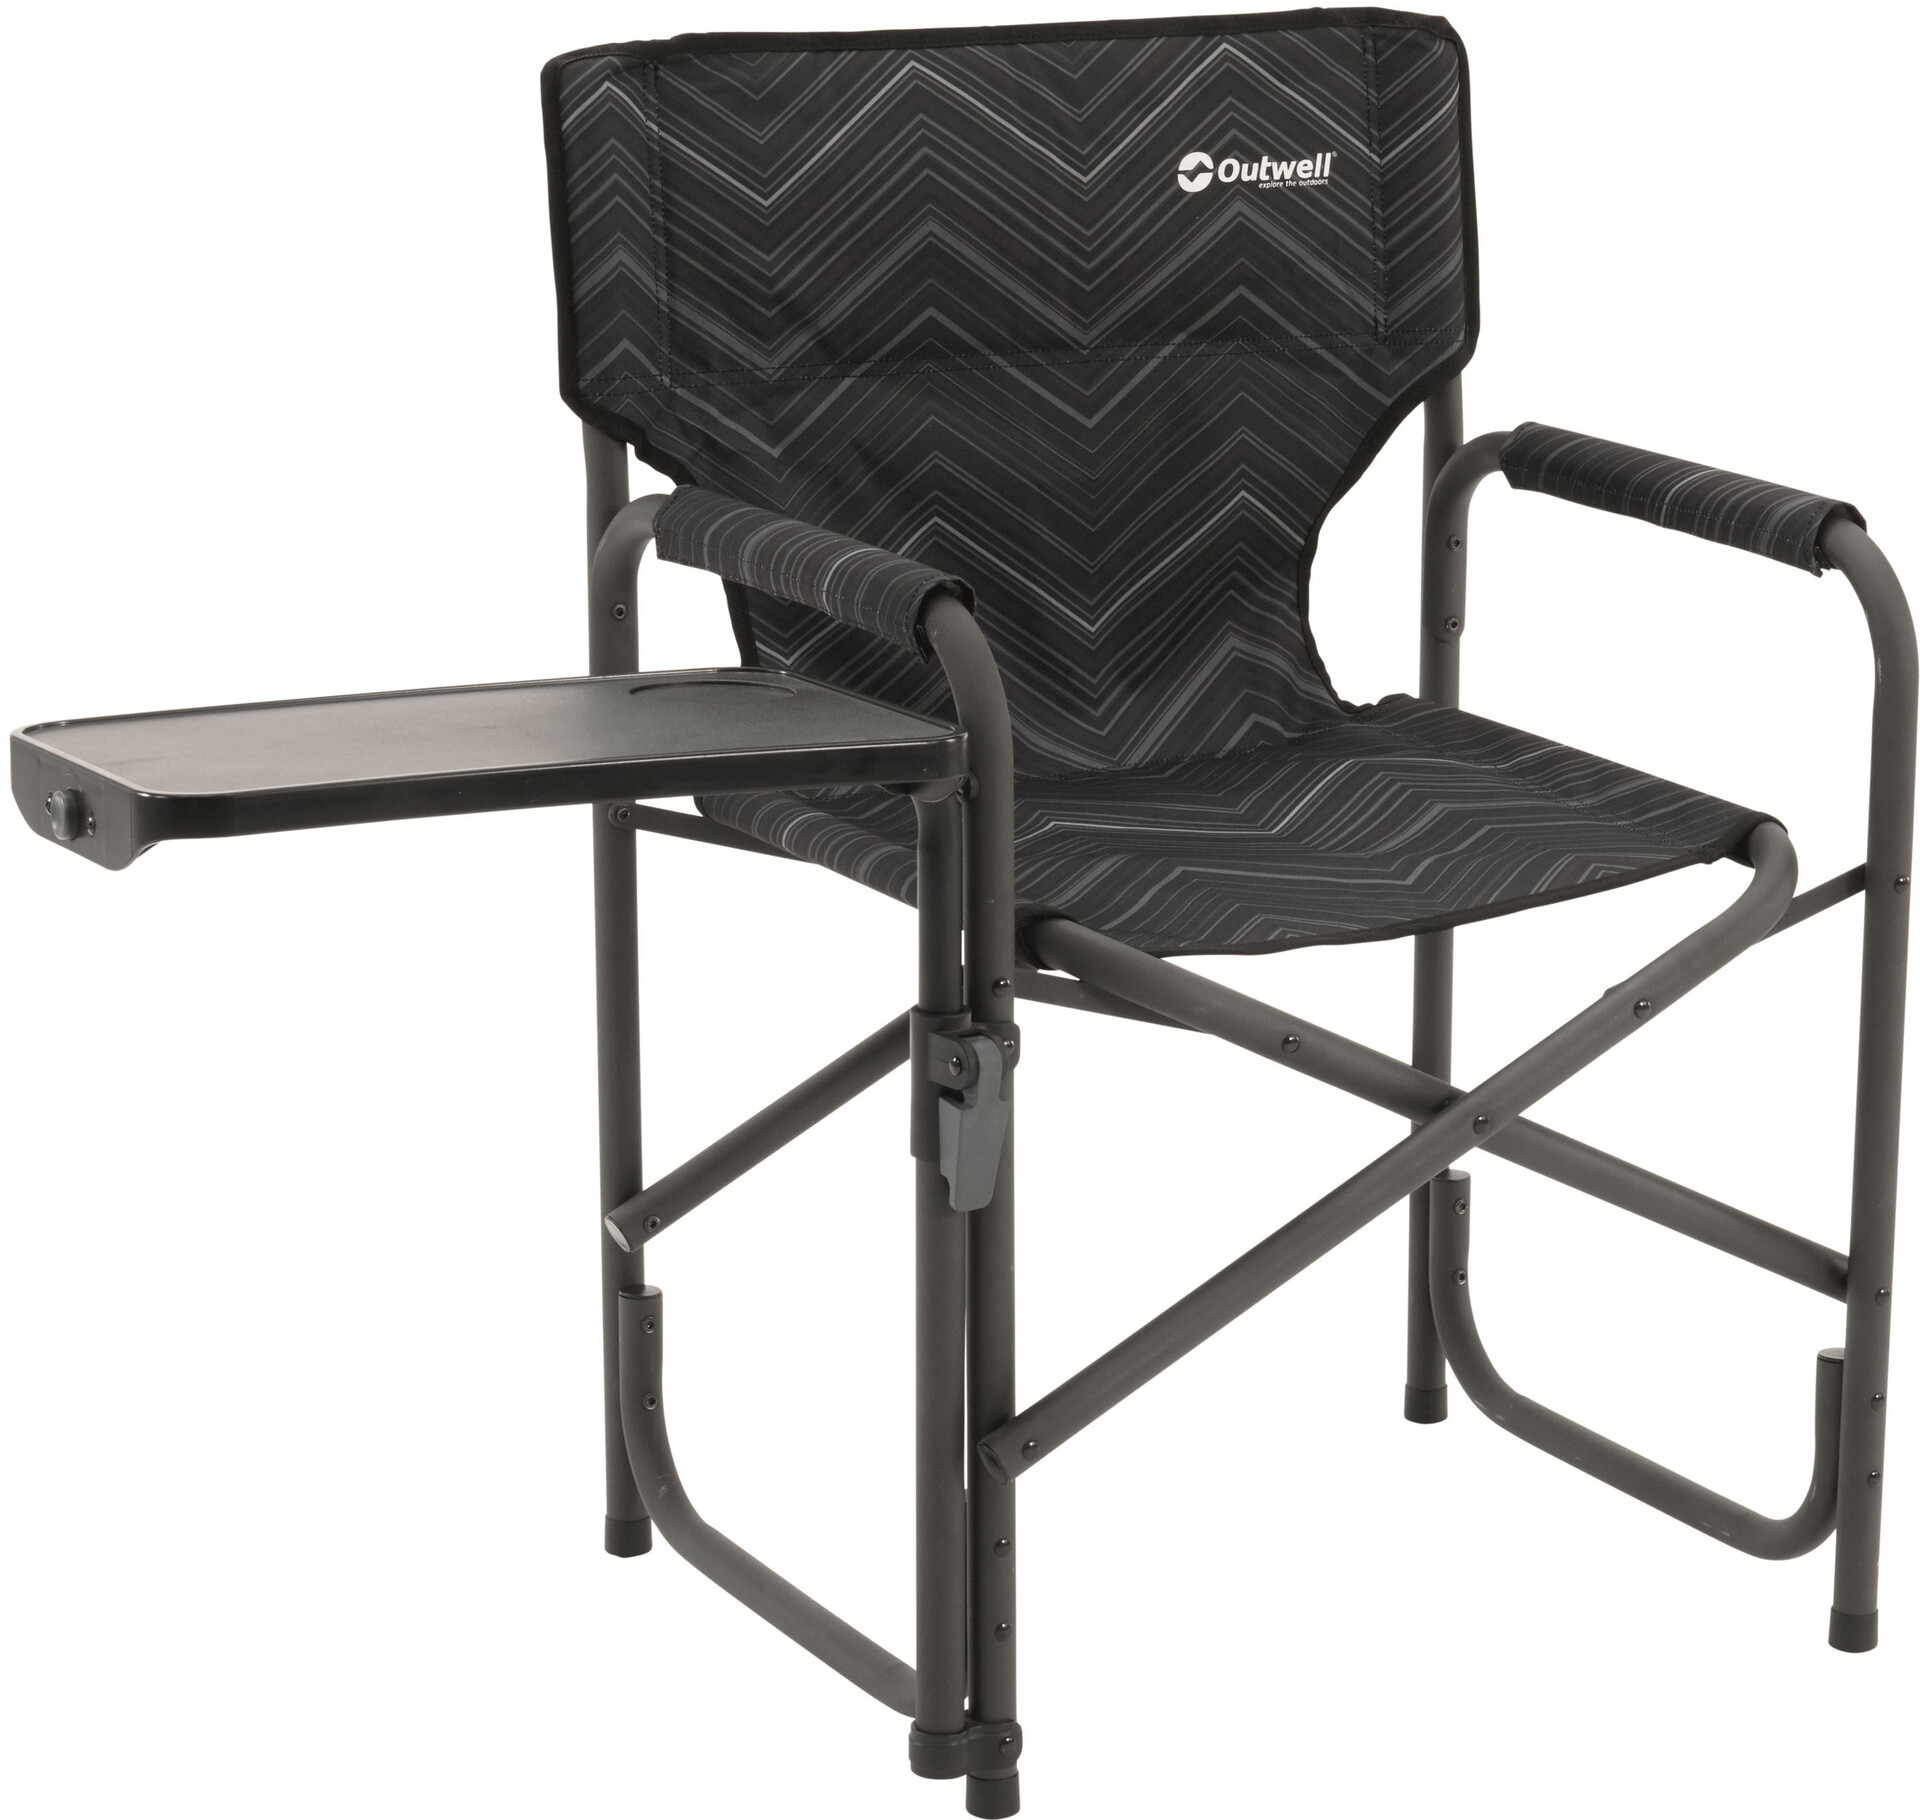 folding chair with side table best posture support outwell chino hills black